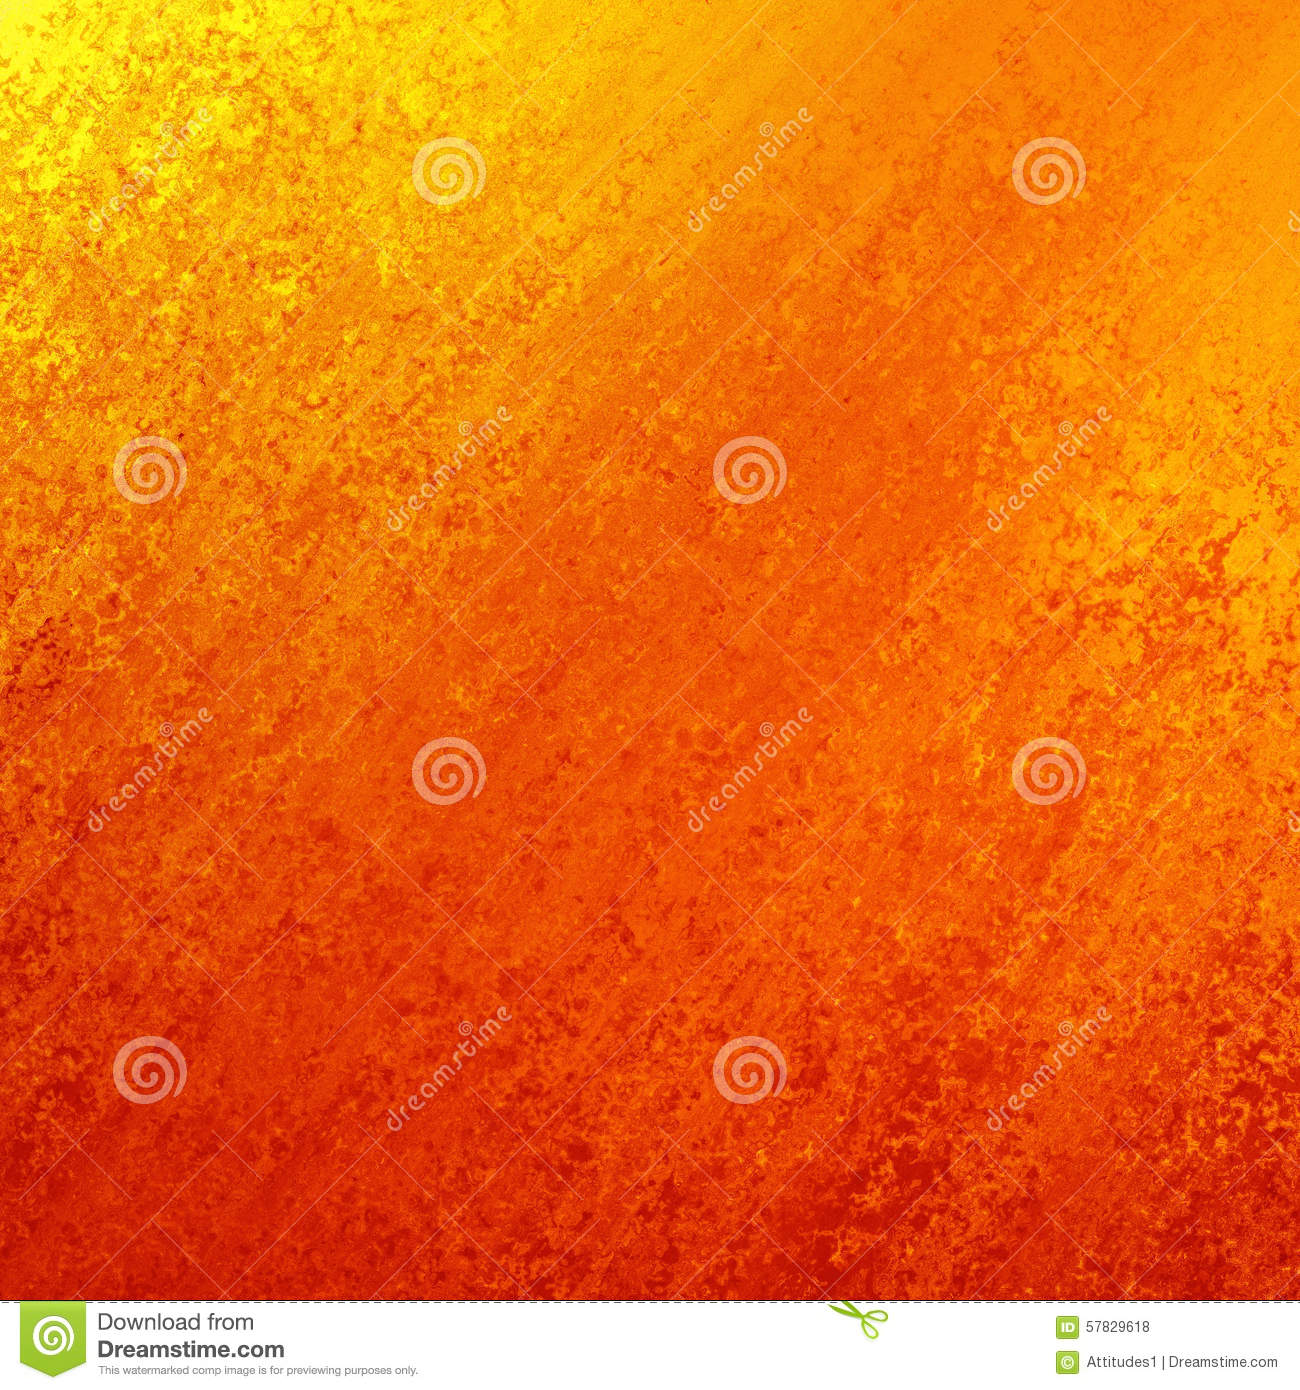 bright red orange and yellow gold background with angled sponged